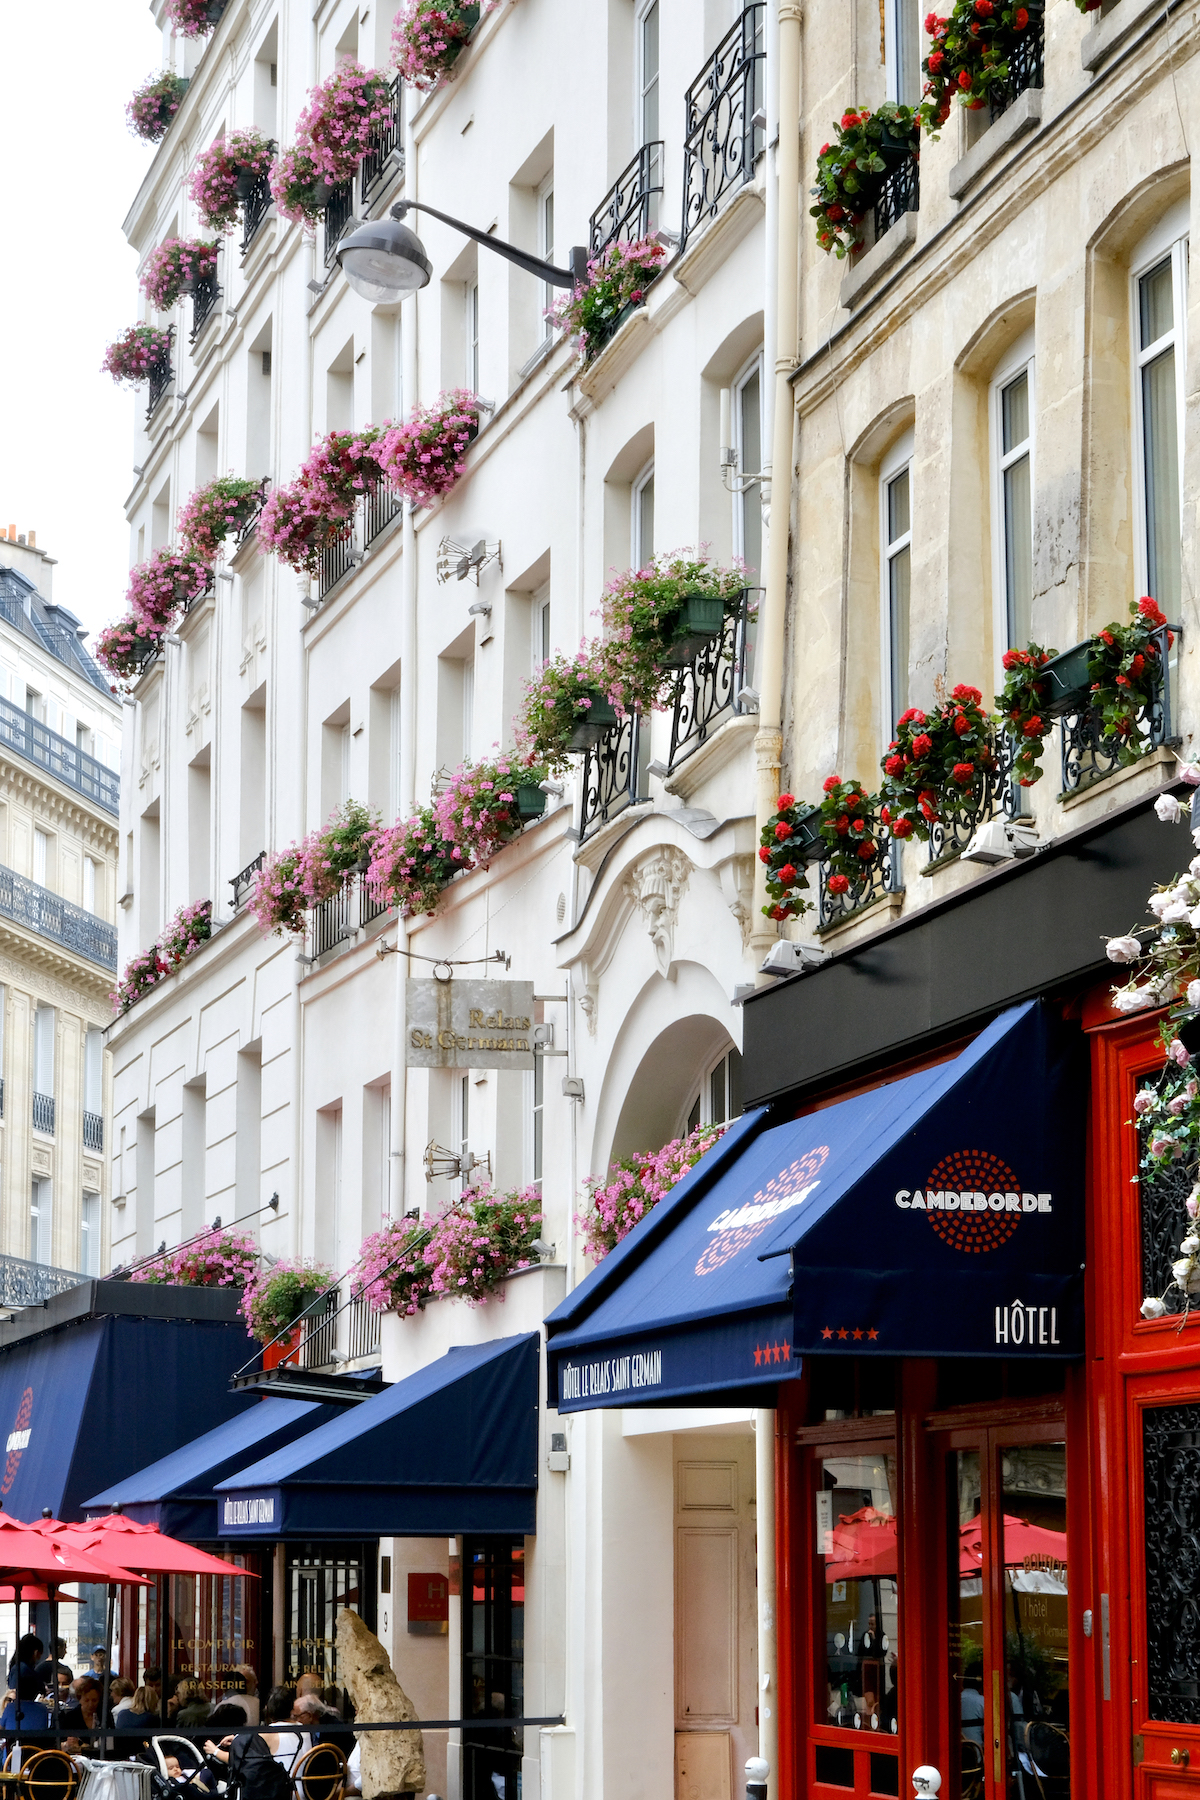 learning french in paris hotel relais saint germain